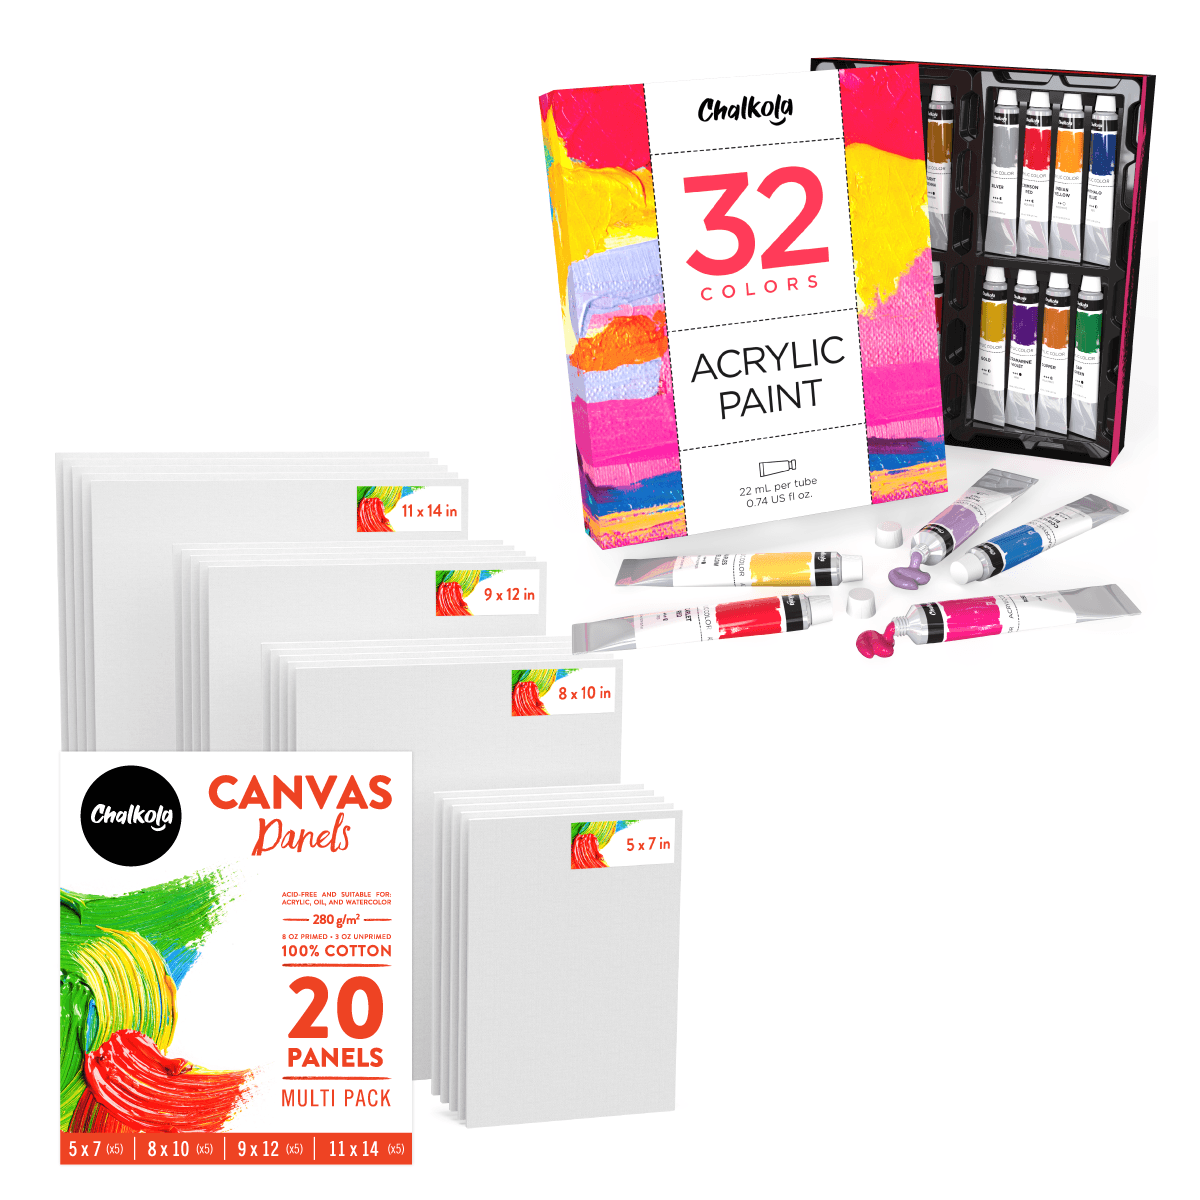 Artist's Bundle: 32 Acrylic Paint + 20 Canvas Panels